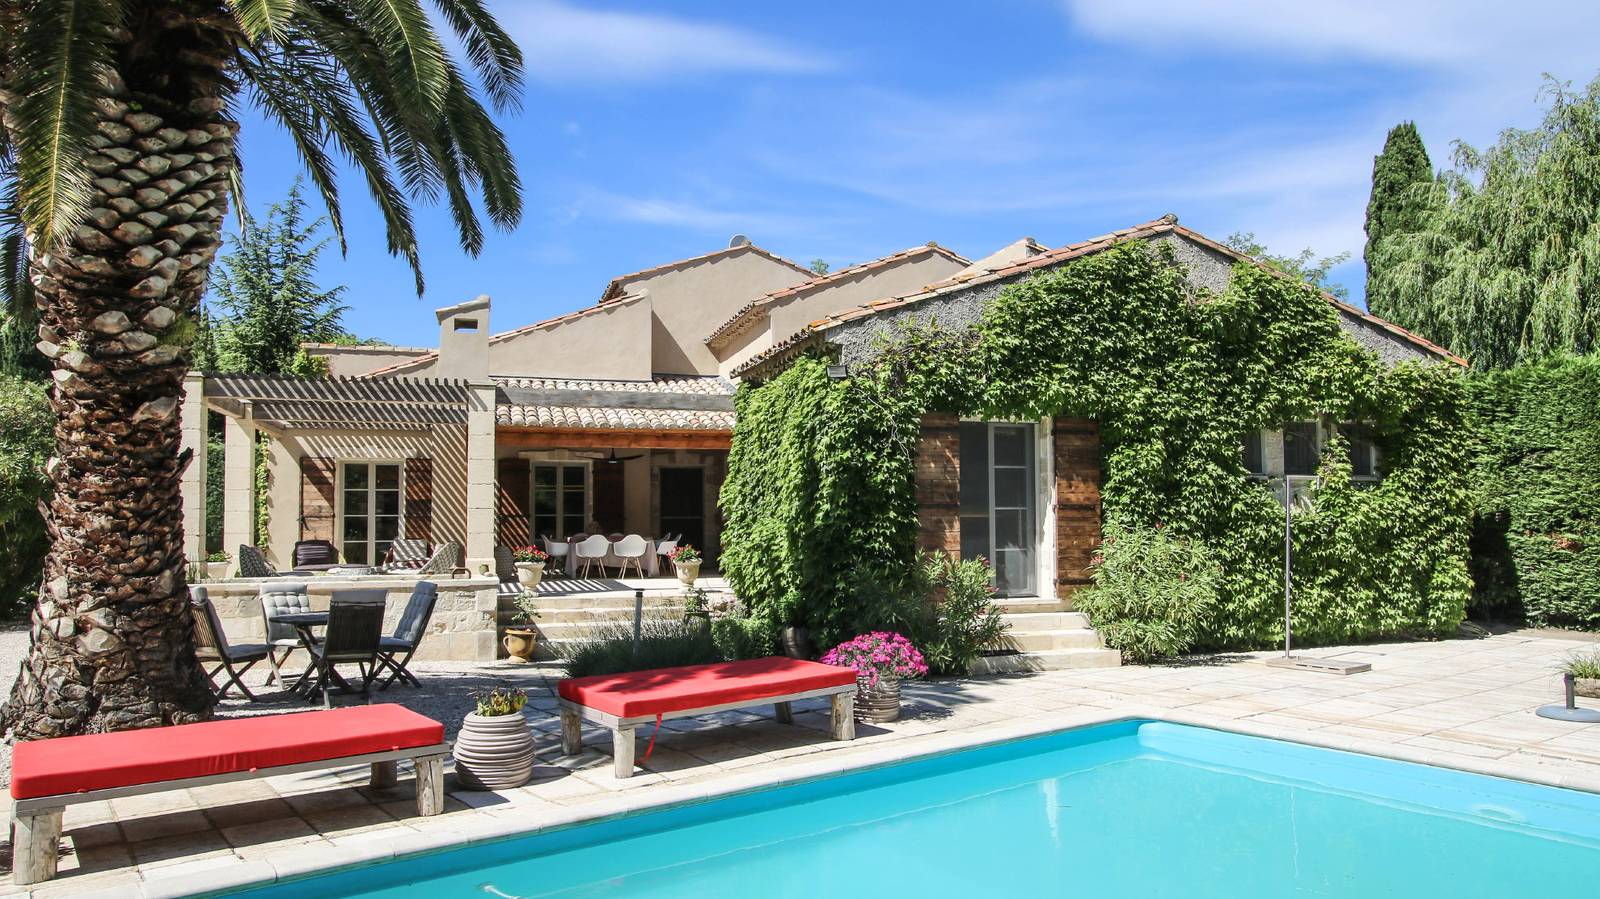 Luxury Vacation Rentals and Villas in South of France Paradou